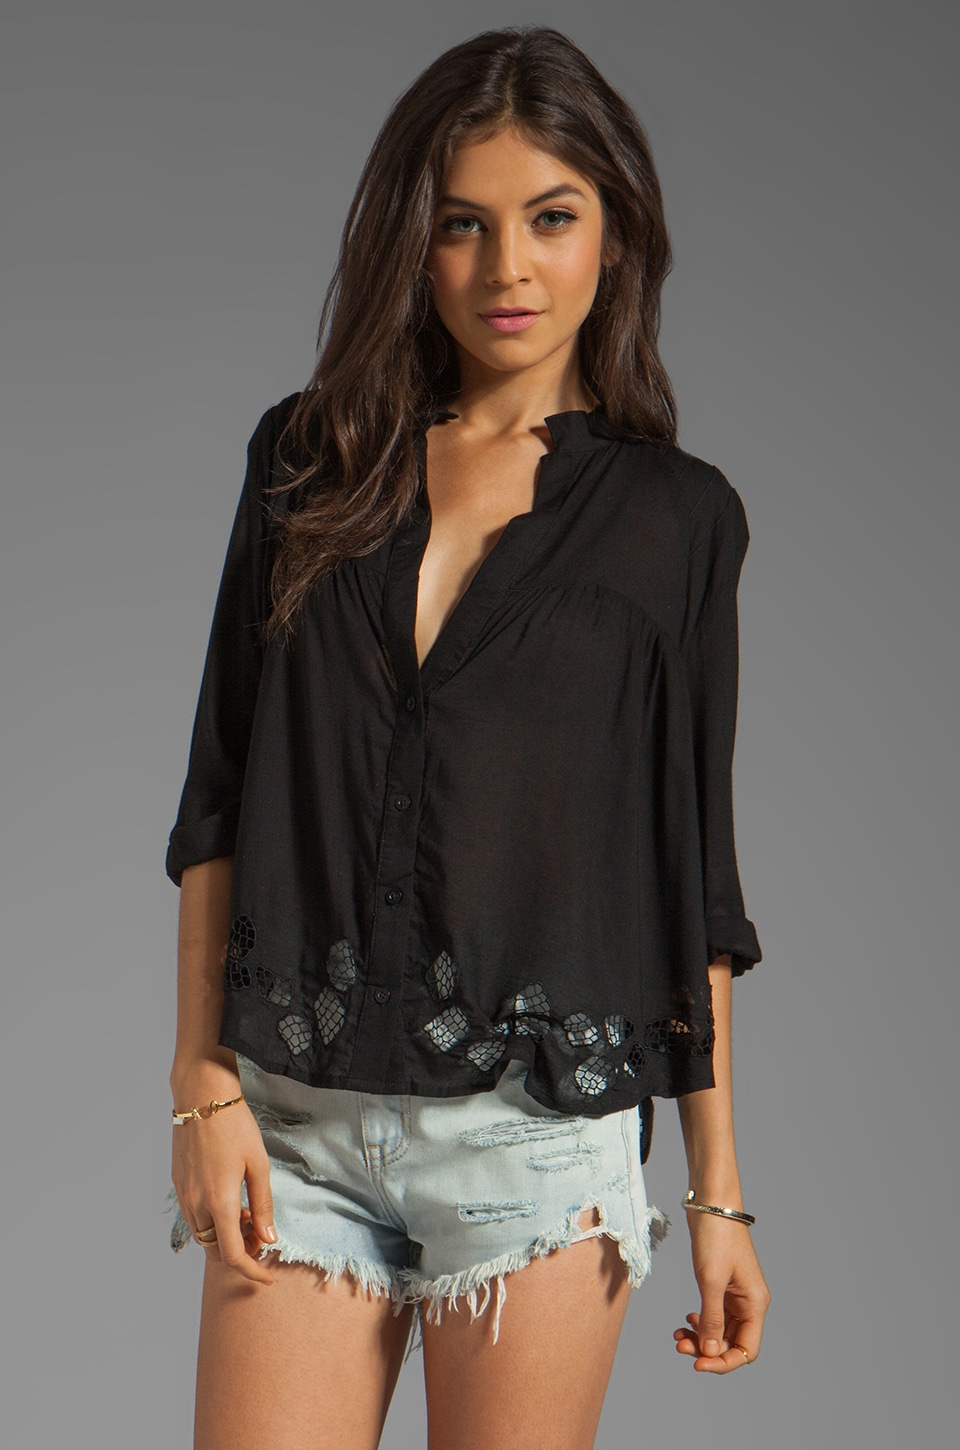 Tiare Hawaii Santorini Eyelet Top in Black